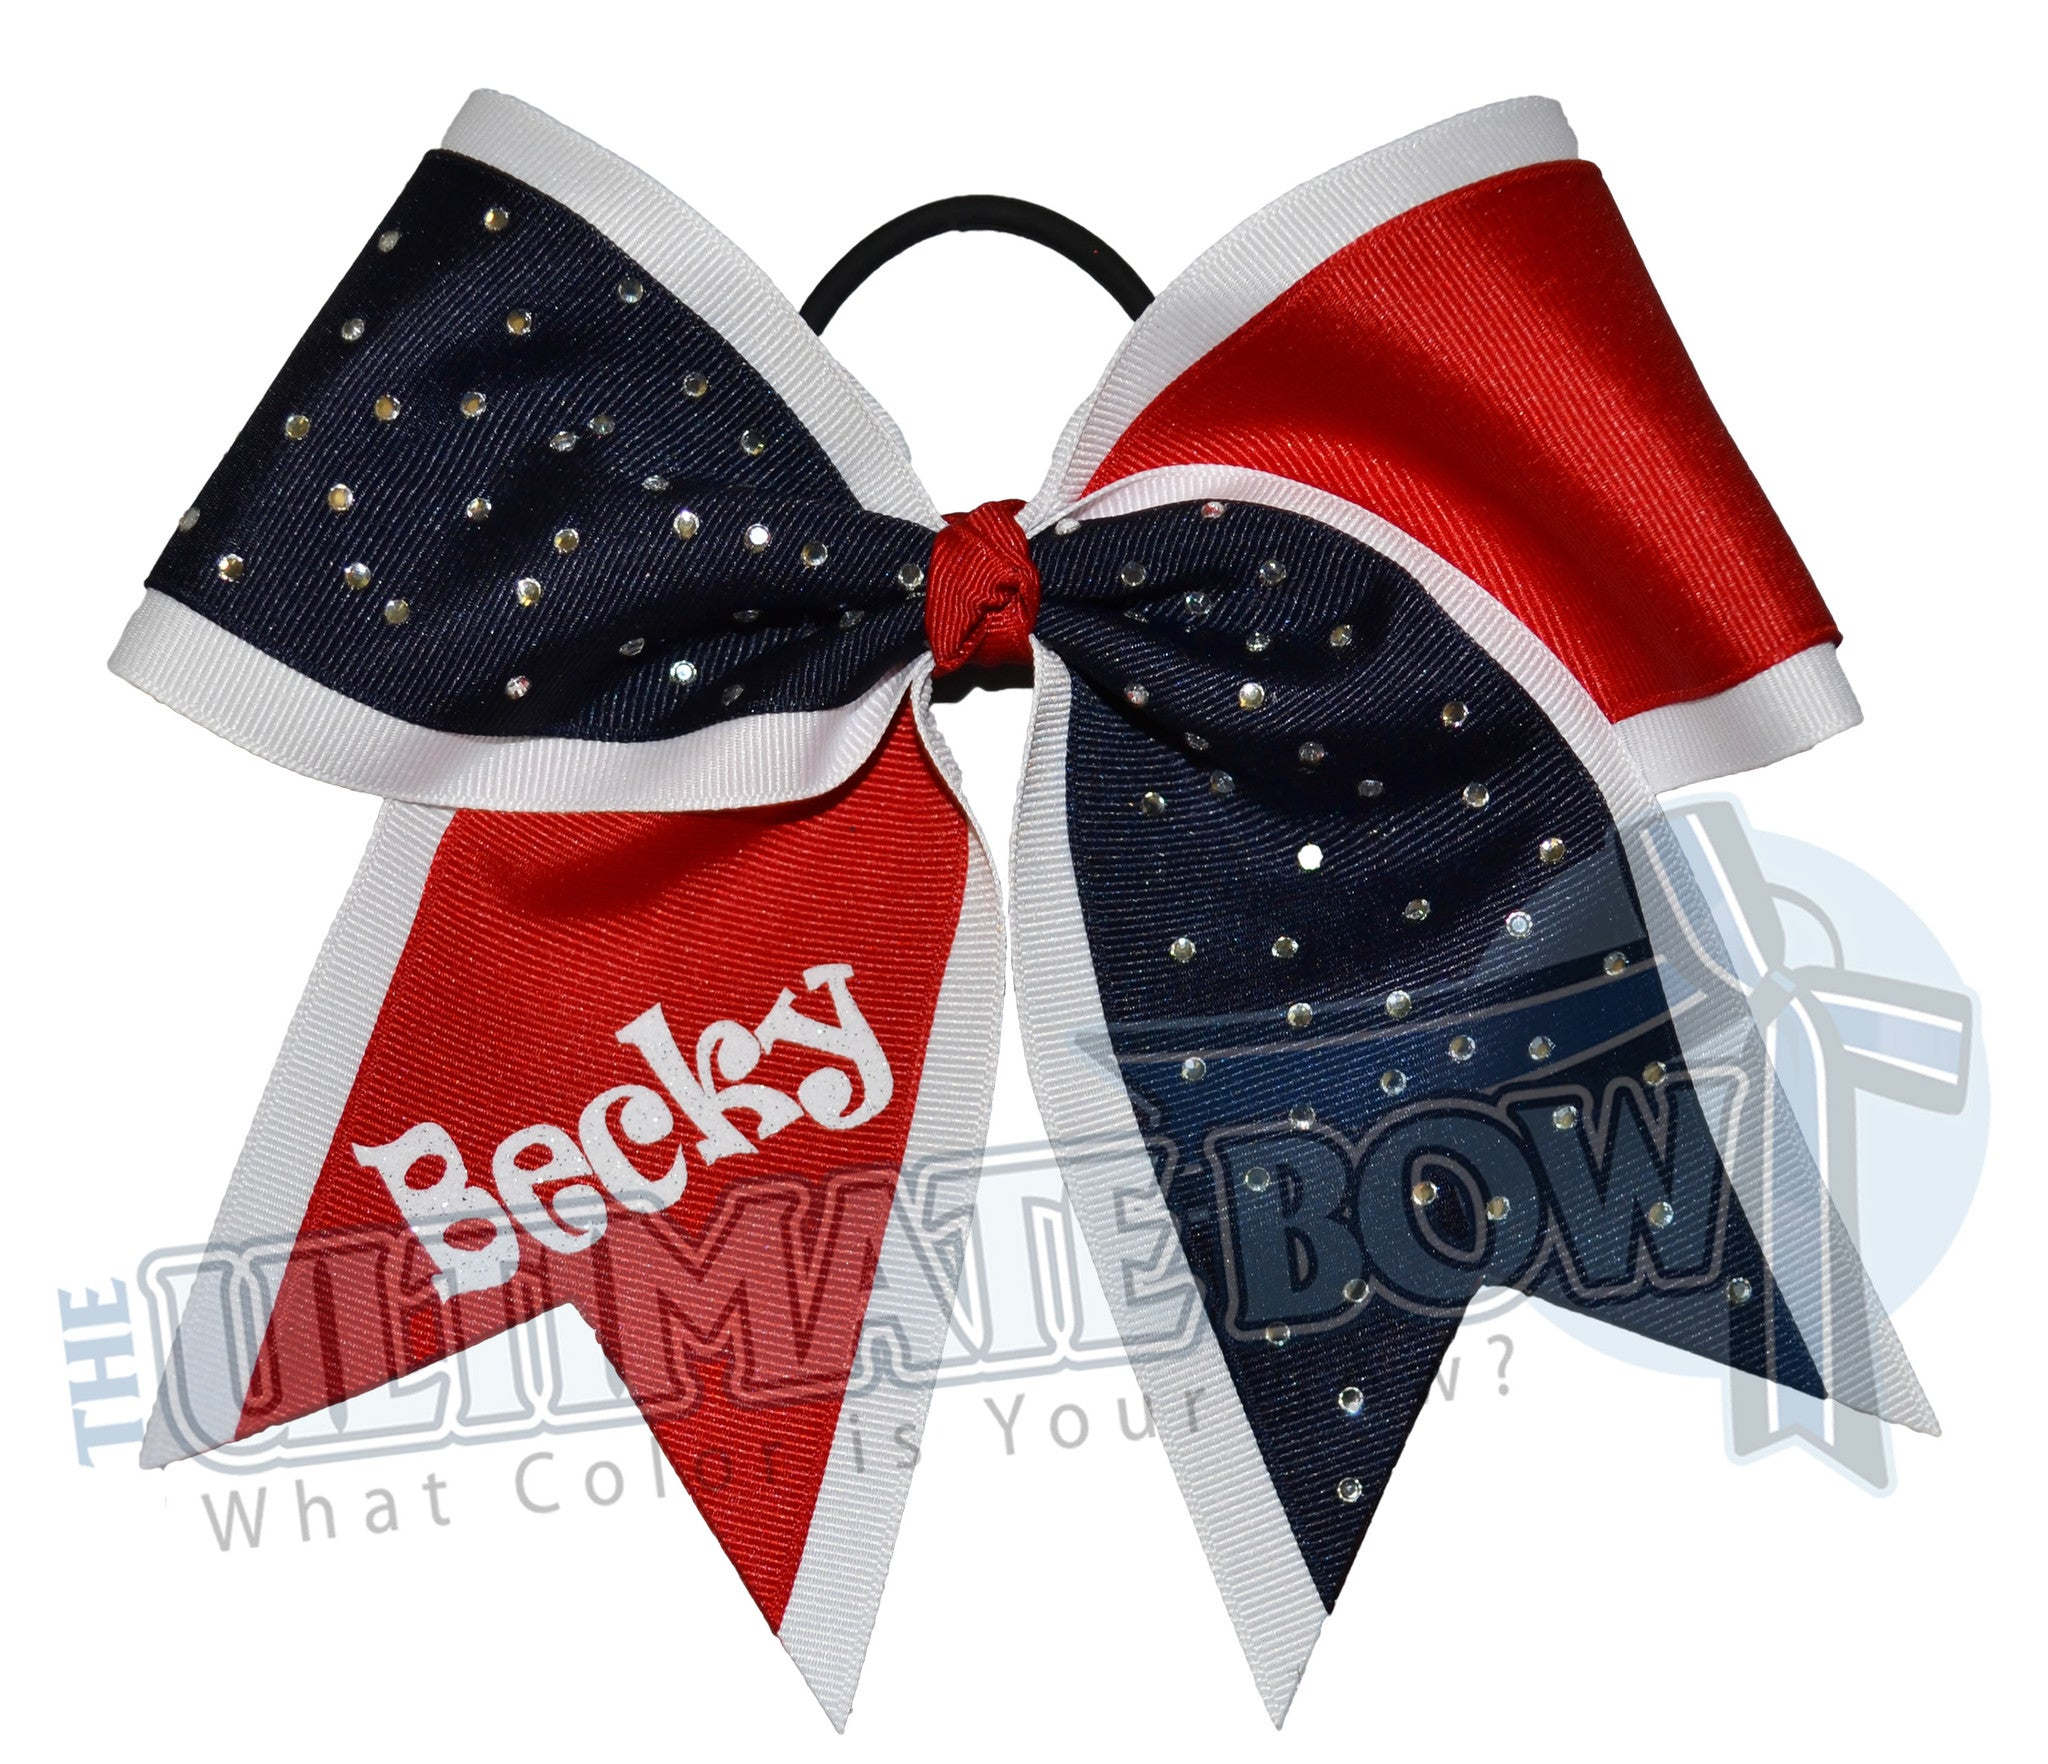 My Sparkling Rhinestone Cheer Bow | Personalized Rhinestone Cheer Bow | Personalized Softball Hair Bow | Black Red White Cheer Bow